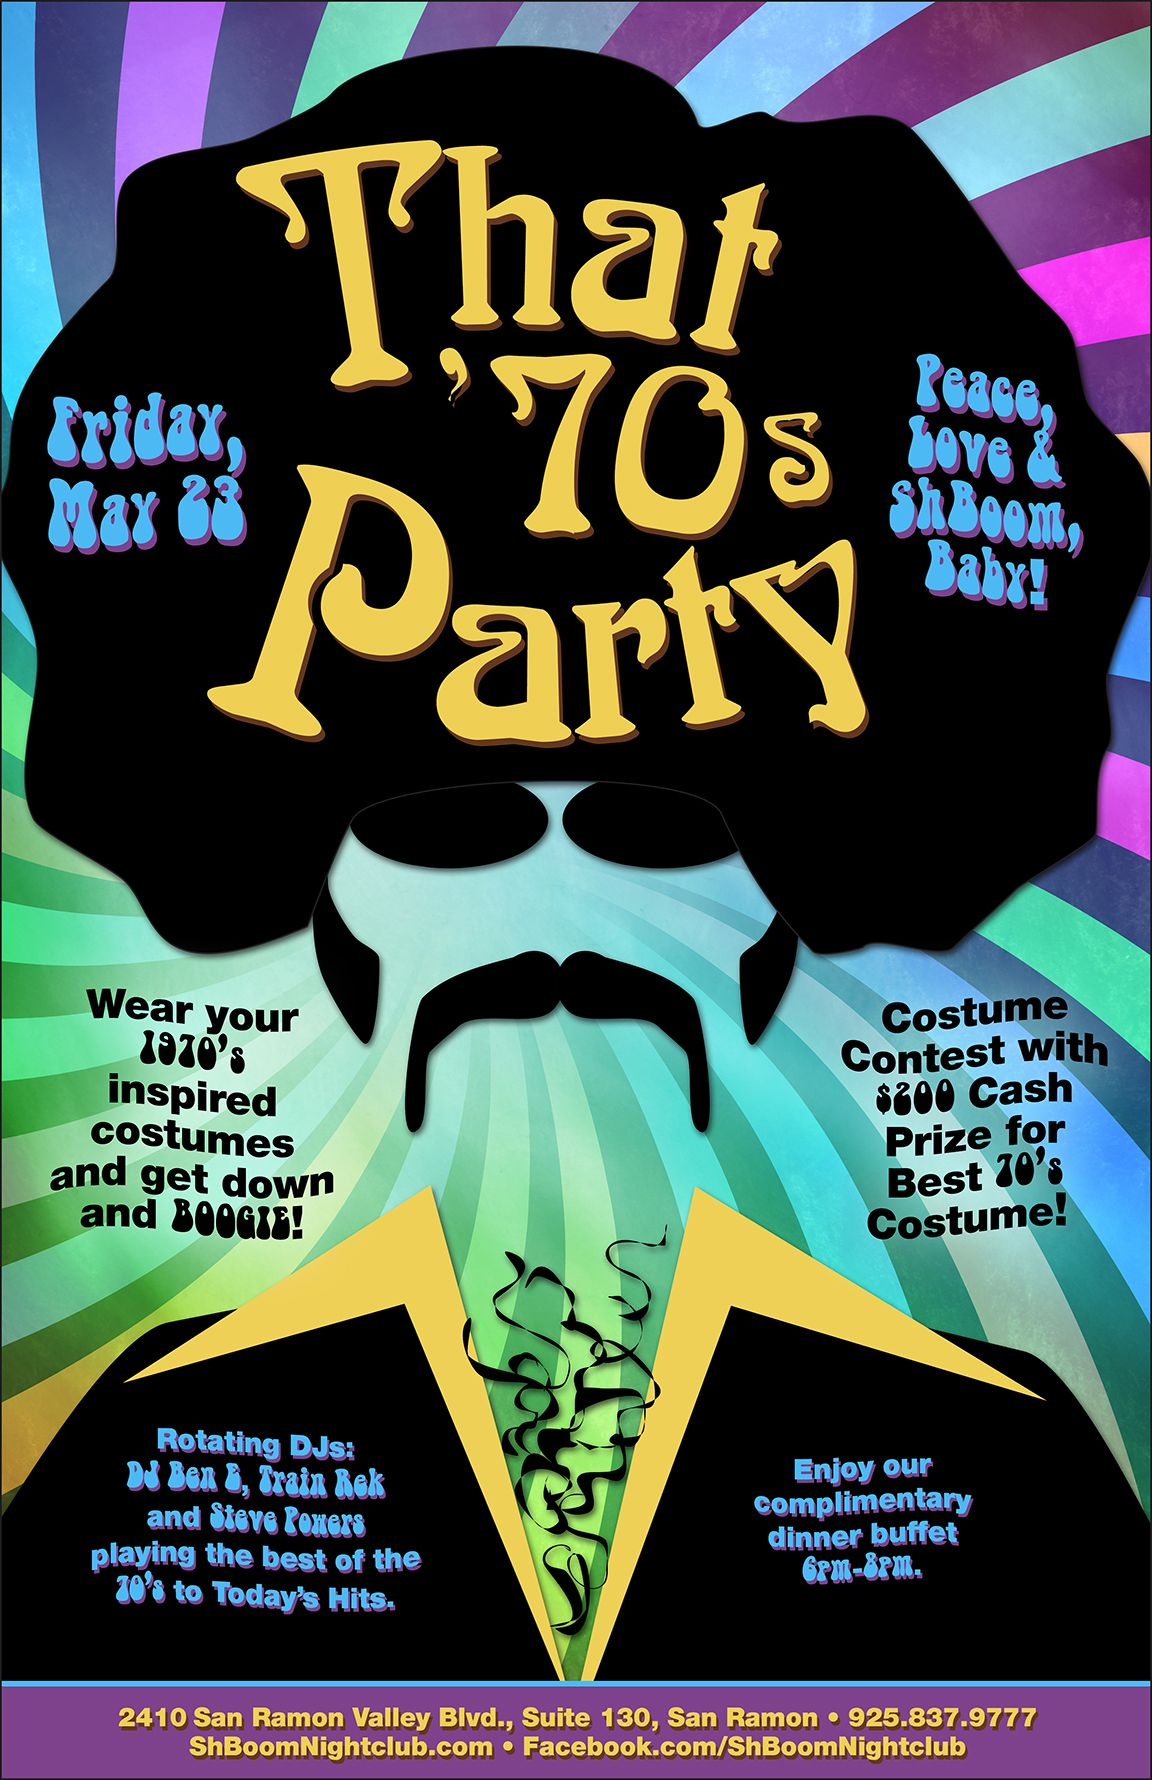 This Is A Flyer That We Have Created For ShBoom Nightclub The Theme Of Event 70s Party Designer Had Idea Using Afro Disco Man